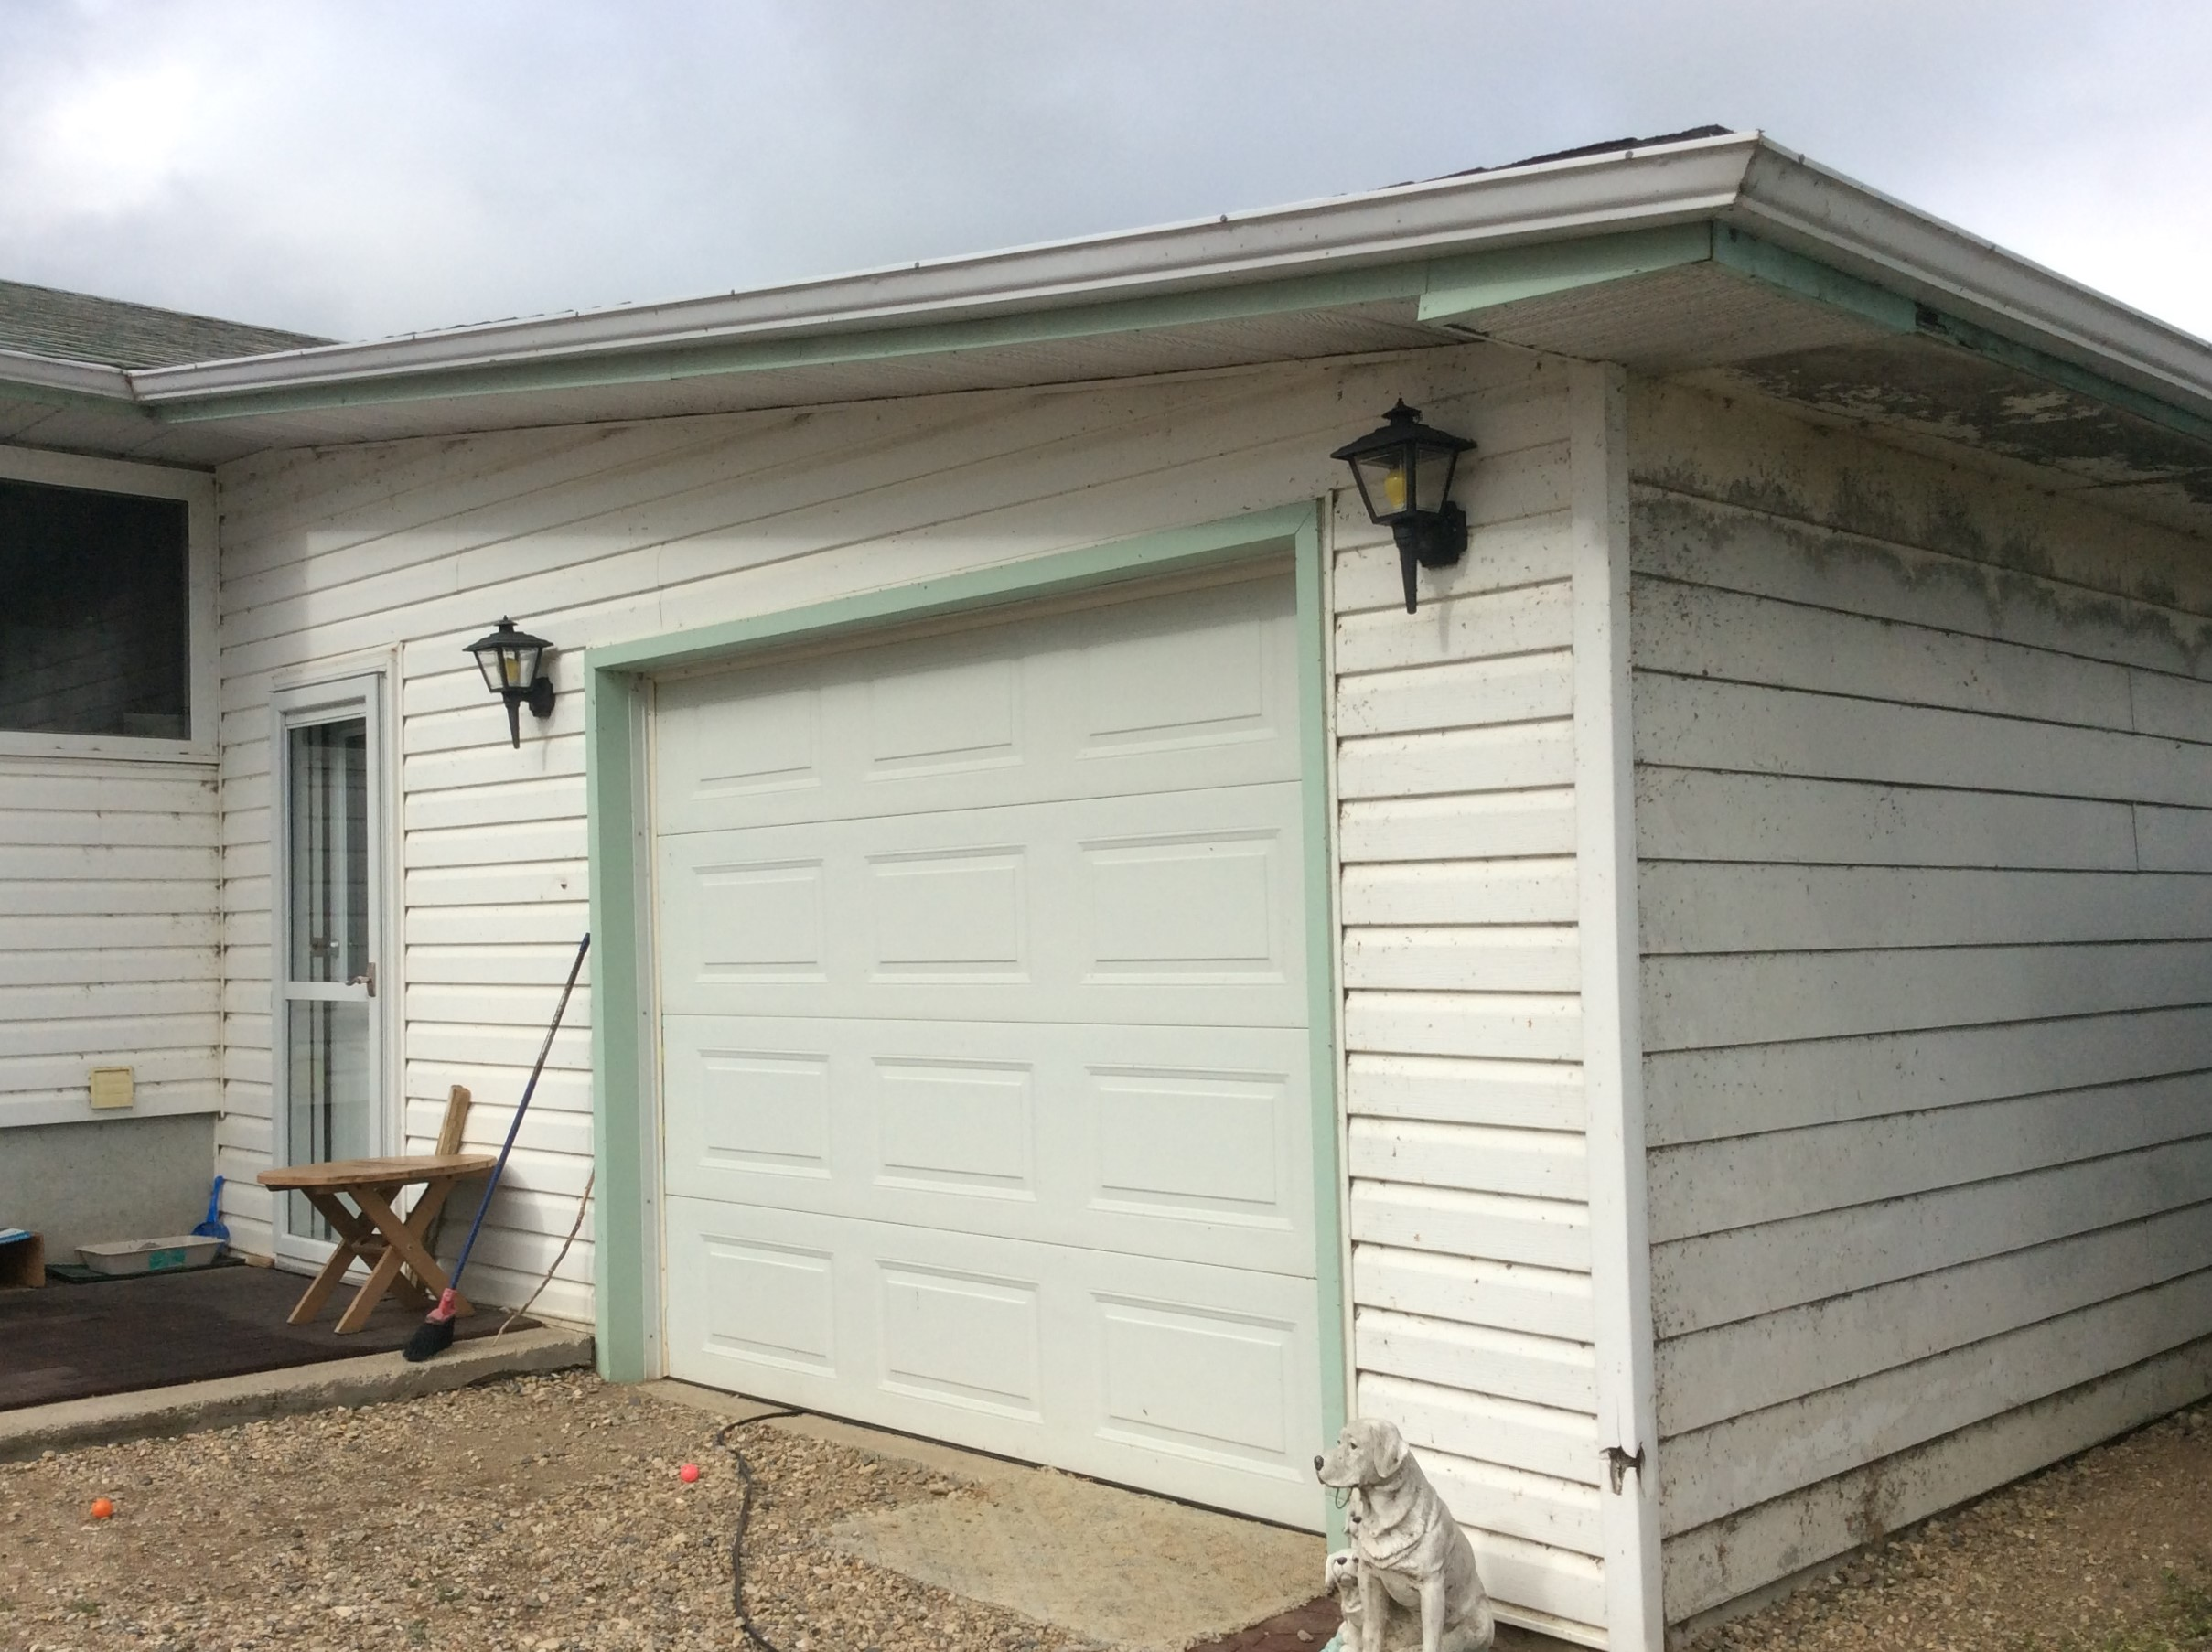 Exterior renovation on a house with hail damage. - Image 1